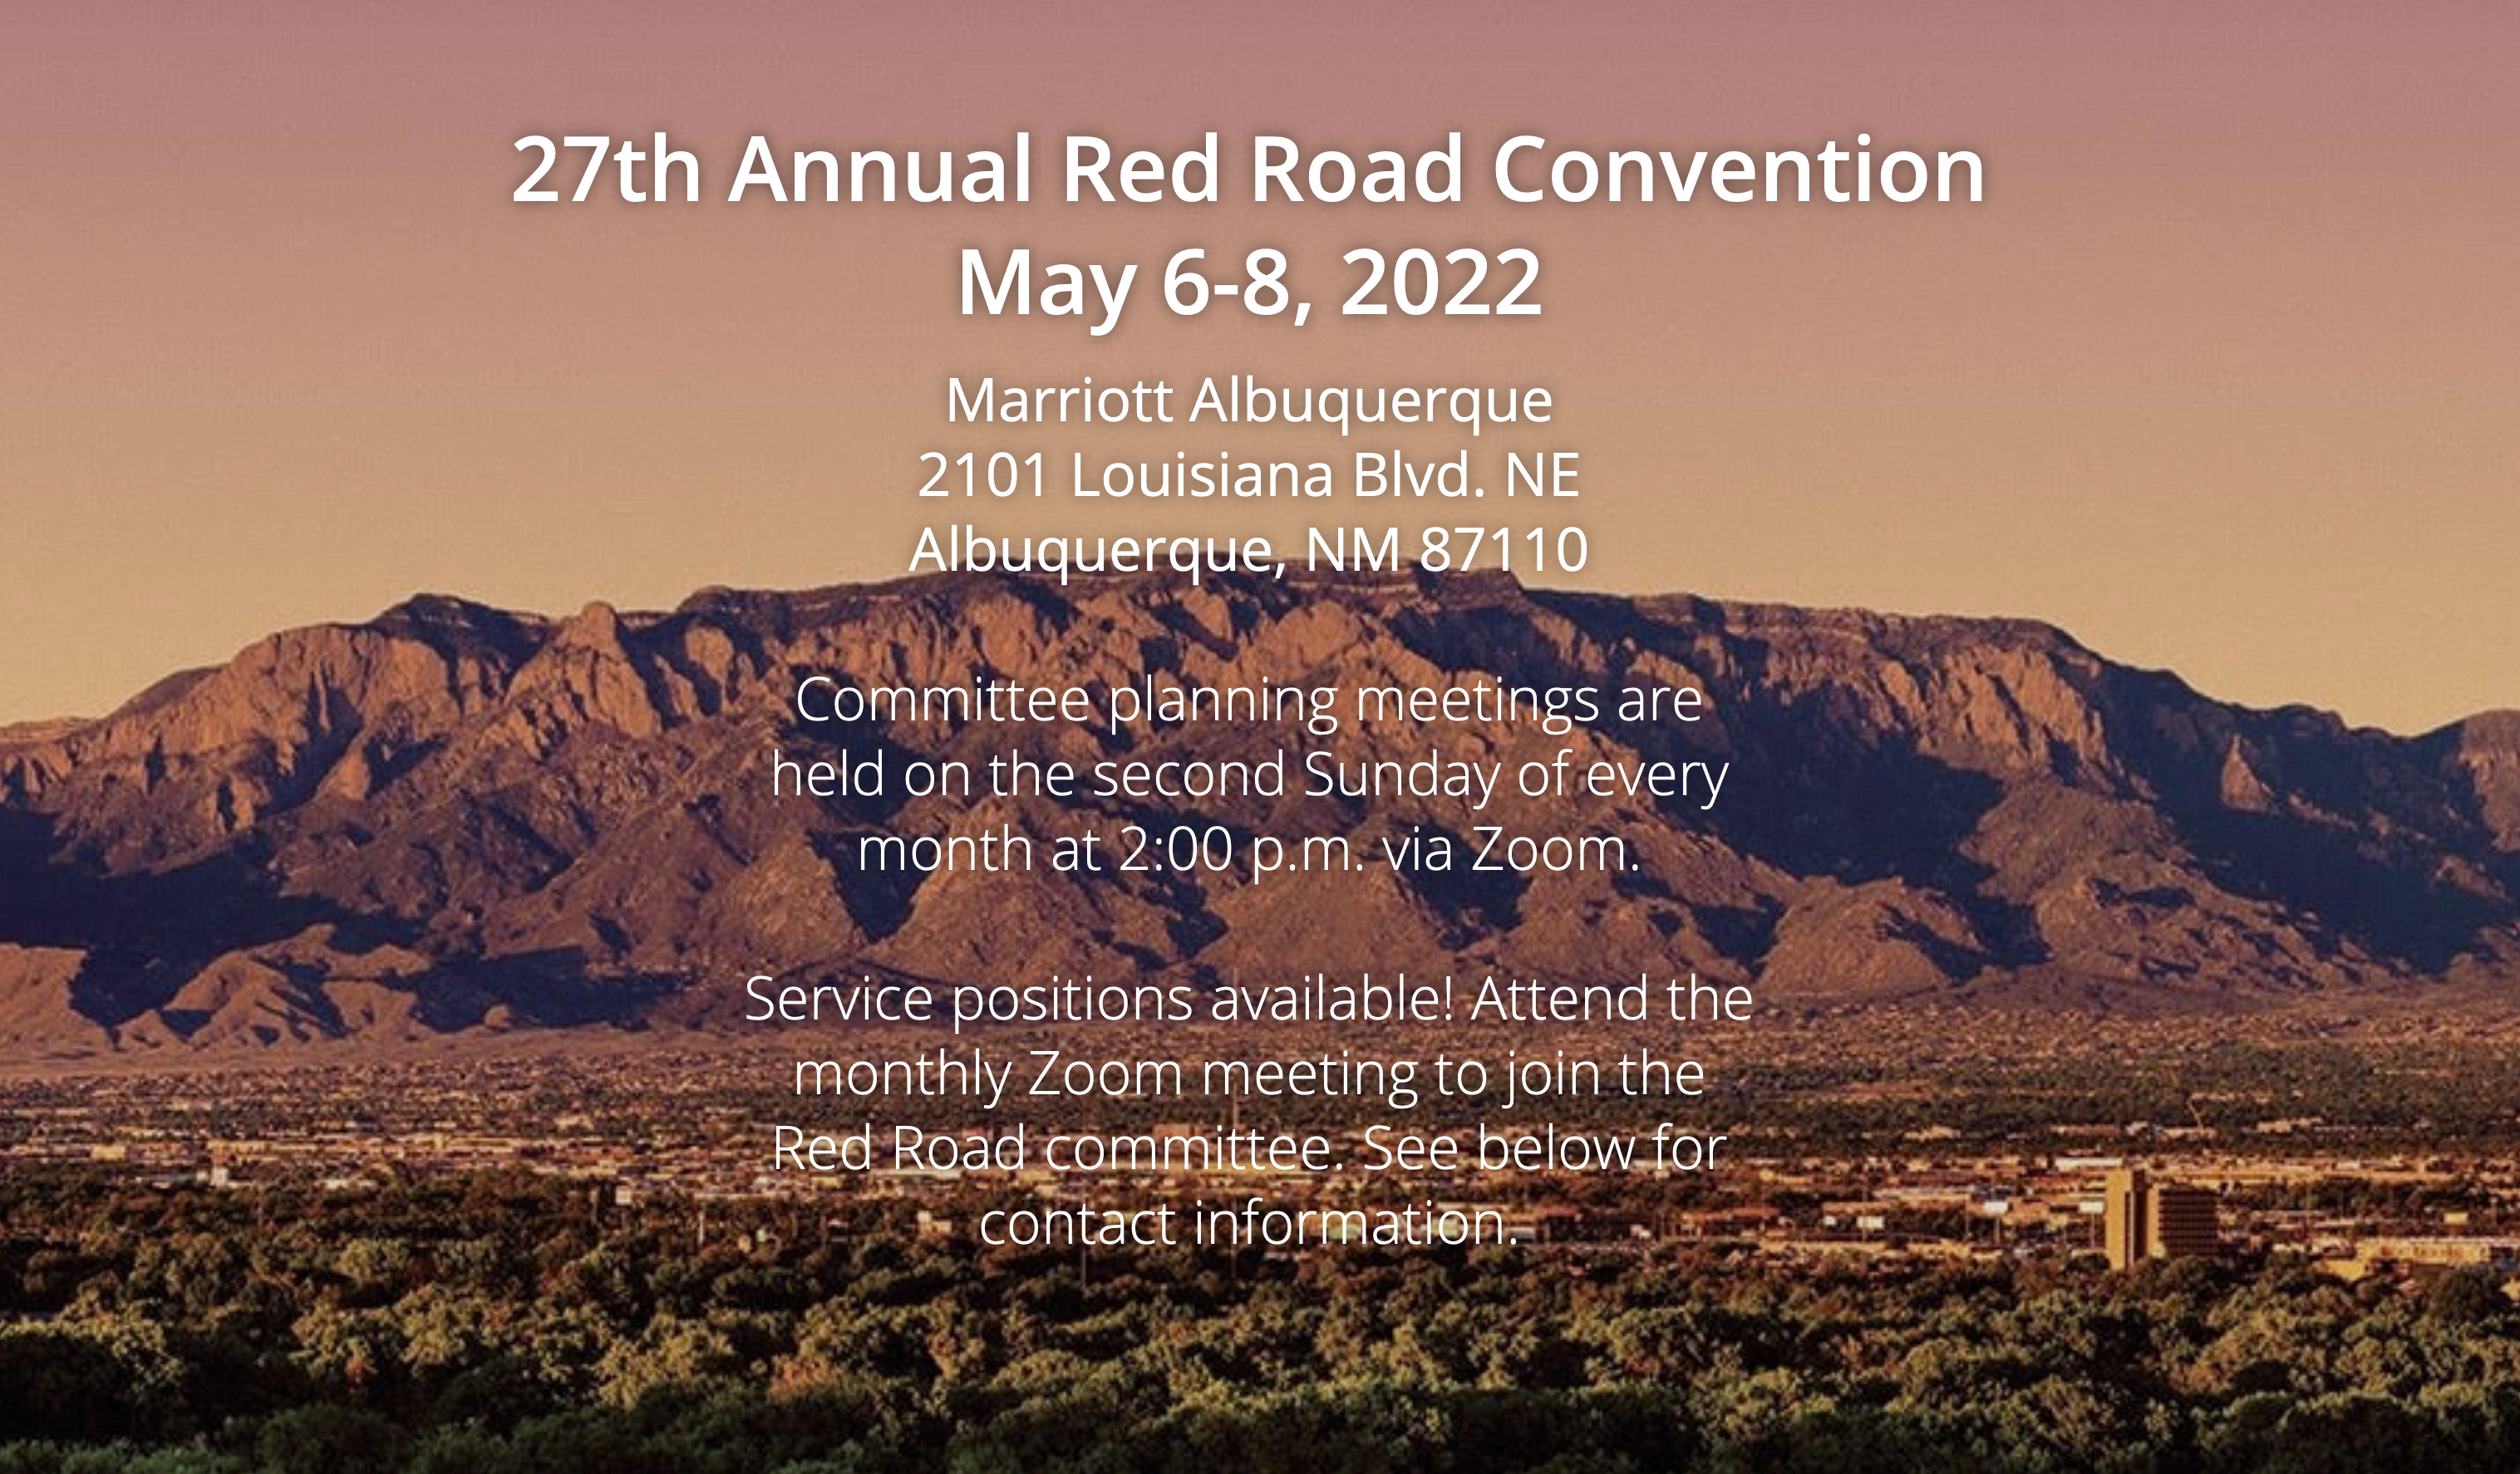 RedRoadConvention2022